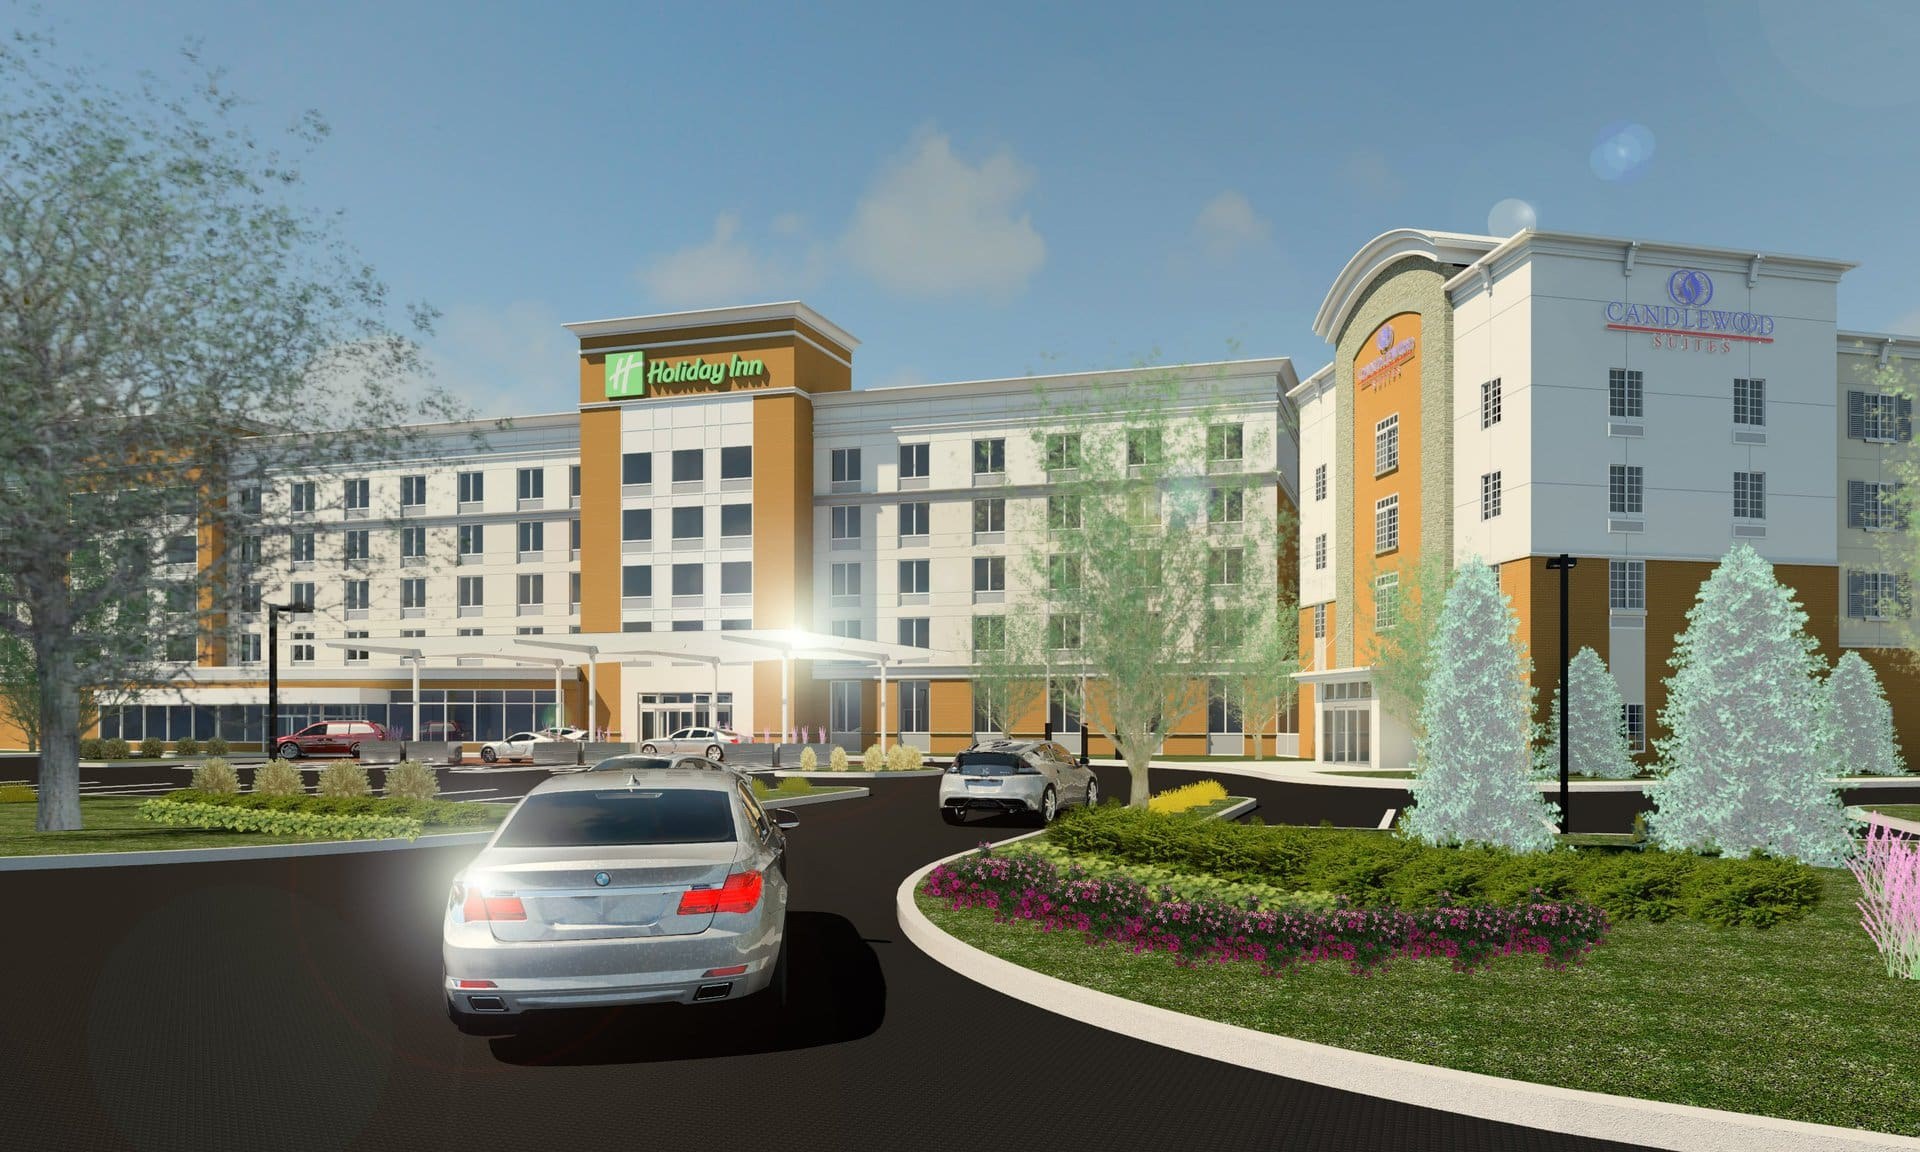 Candlewood Suites, Holiday Inn Rendering